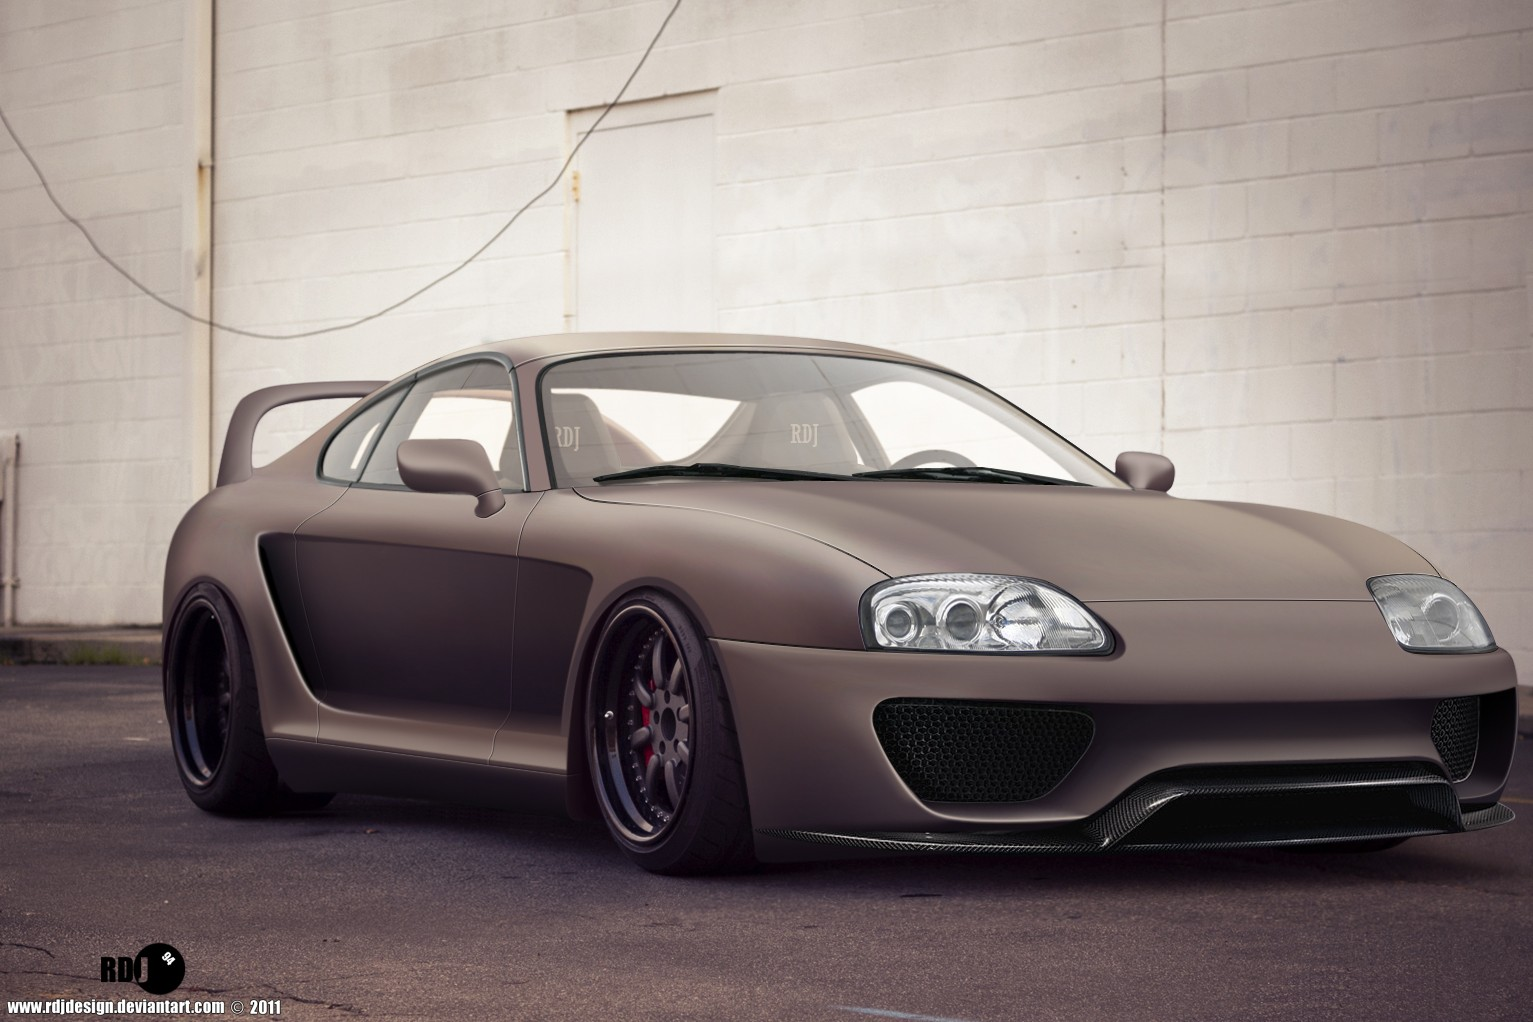 Slammed Supra Matte Wallpapers Slammed Supra Matte HD Wallpapers 1533x1022